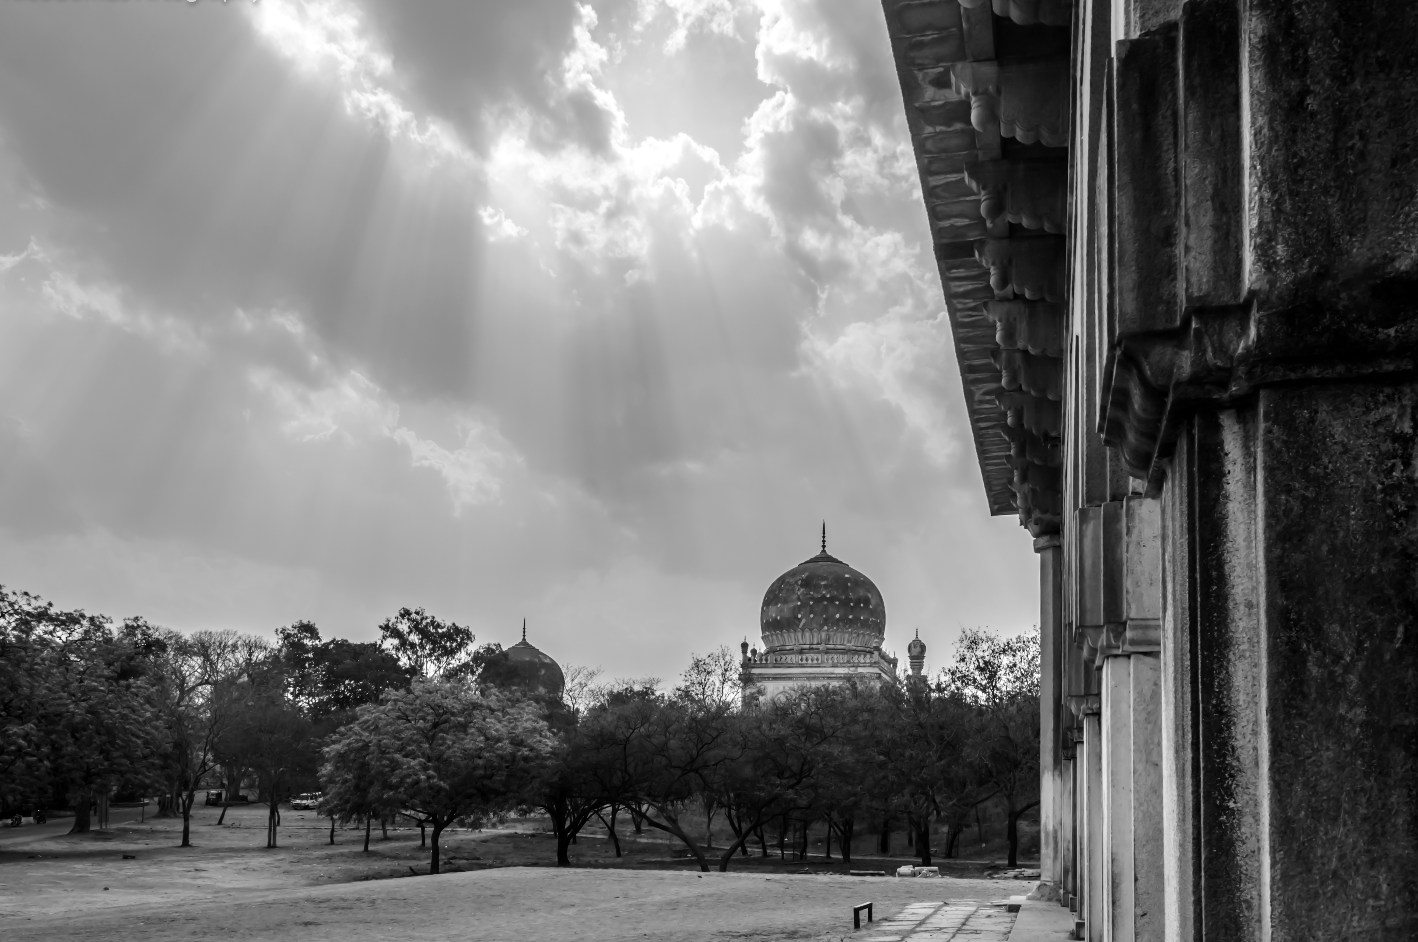 Qutub Shahi Tombs in Hyderabad, India